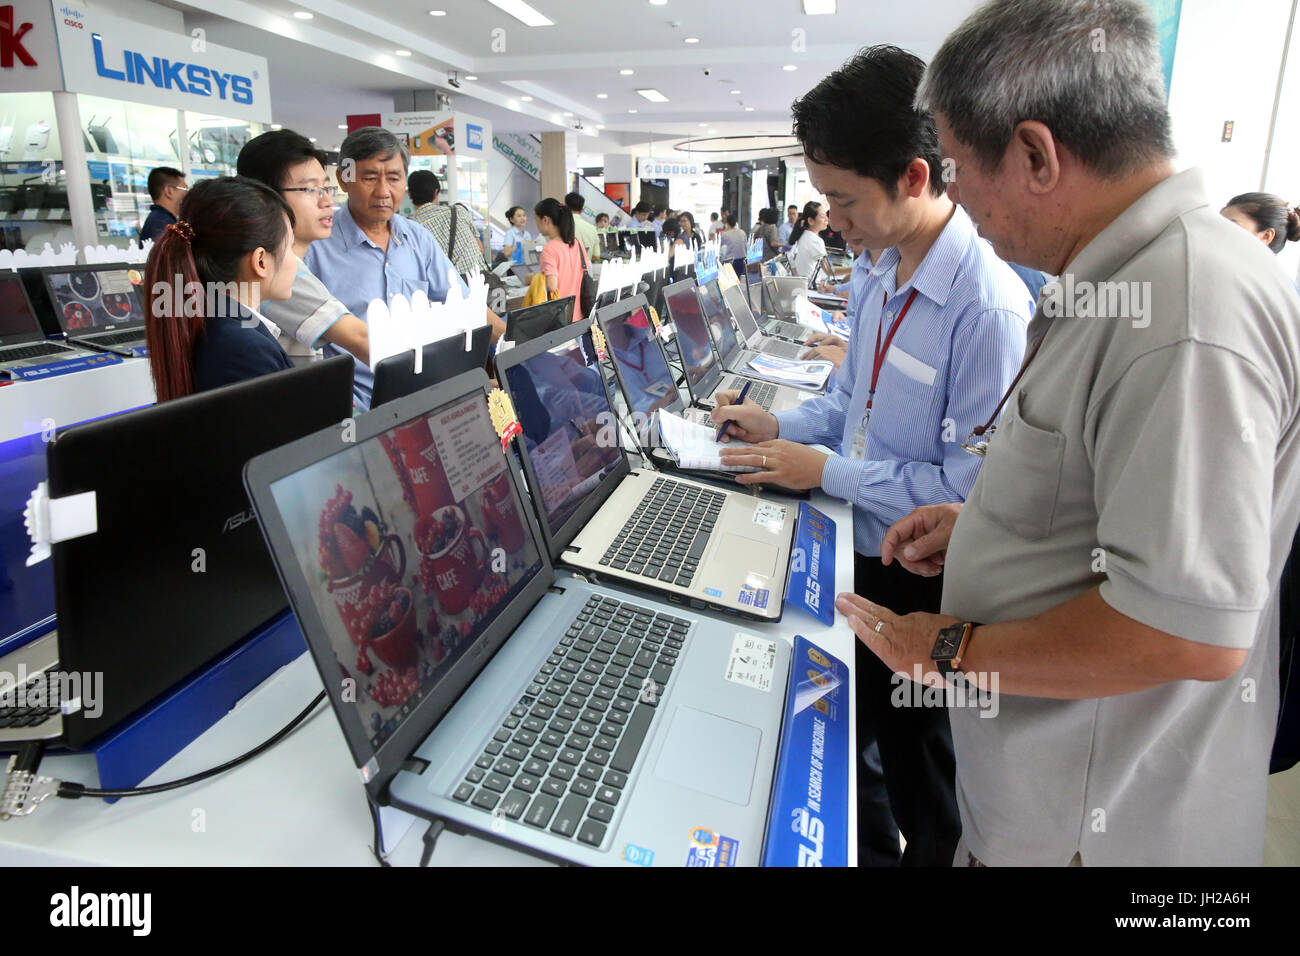 Electronics shop. Shop Assistant Helping a Customer With a Laptop.  Ho Chi Minh City. Vietnam. - Stock Image